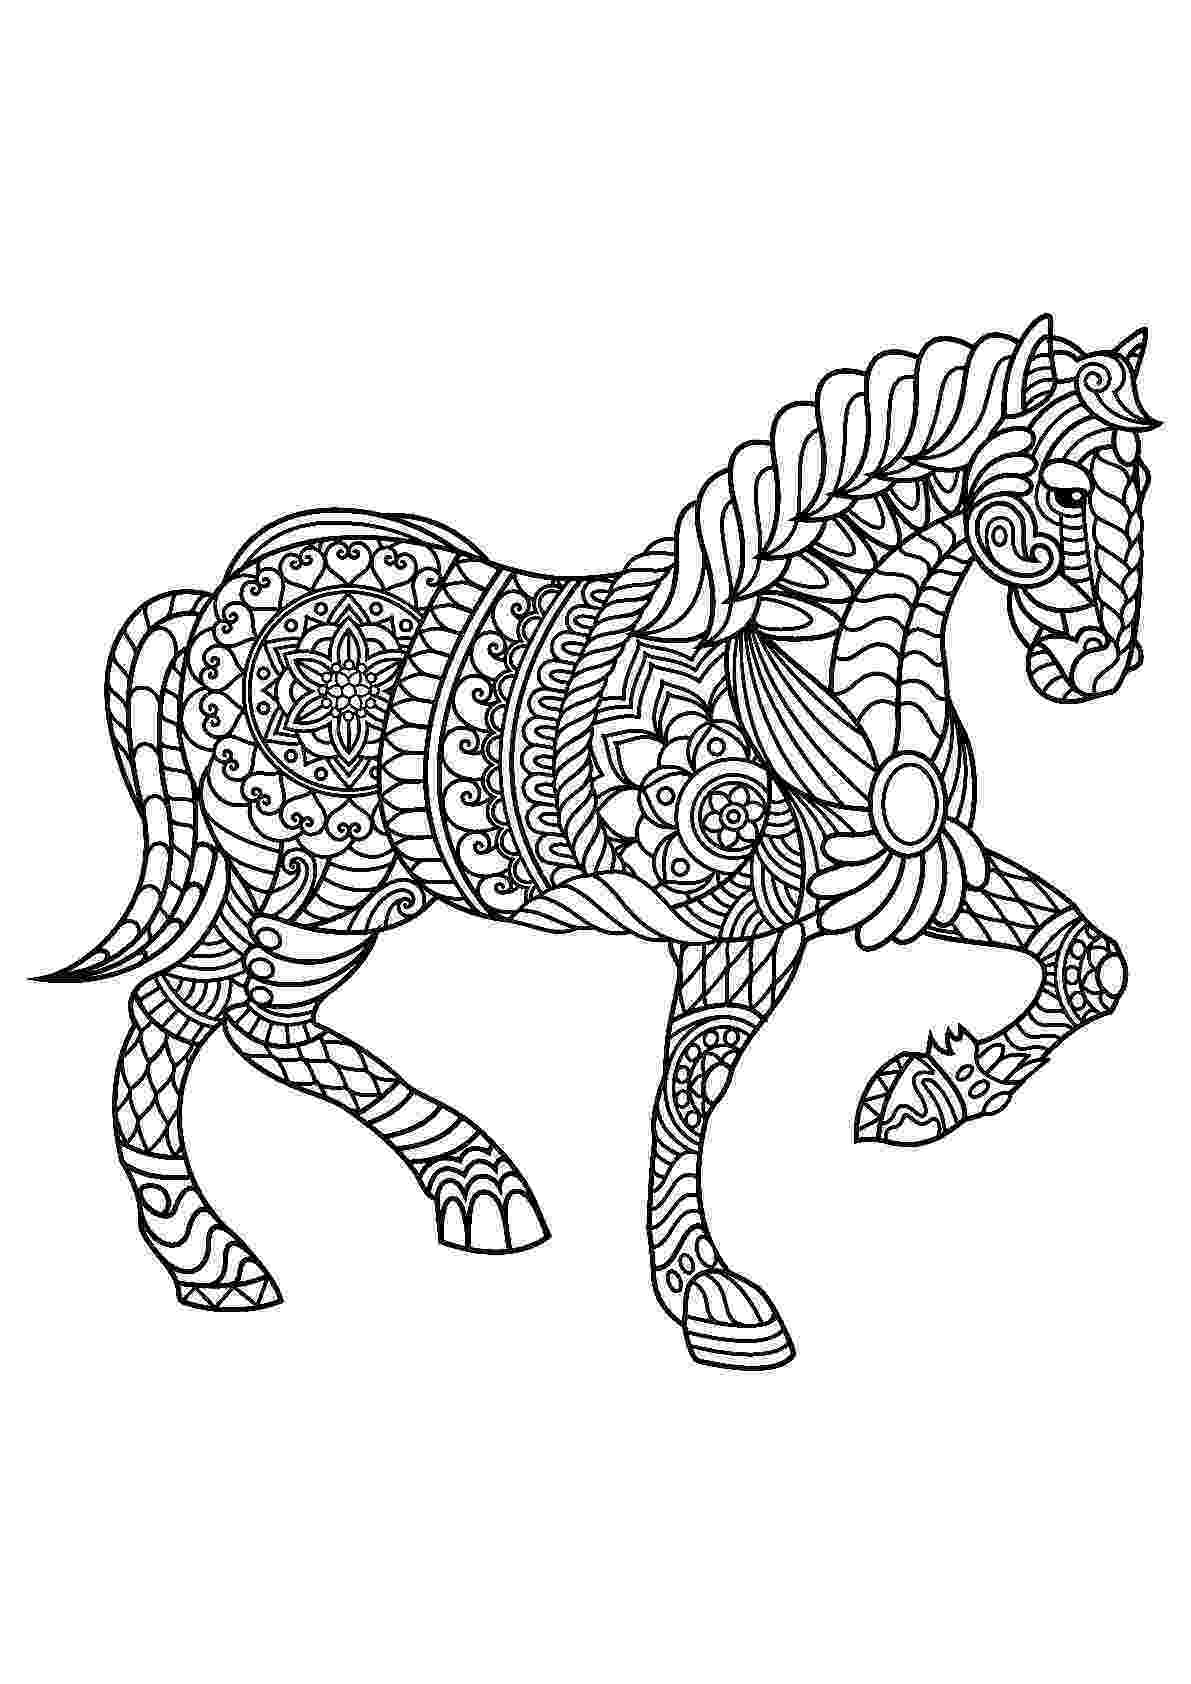 horse color pictures colour drawing free hd wallpapers horse for kids coloring color horse pictures